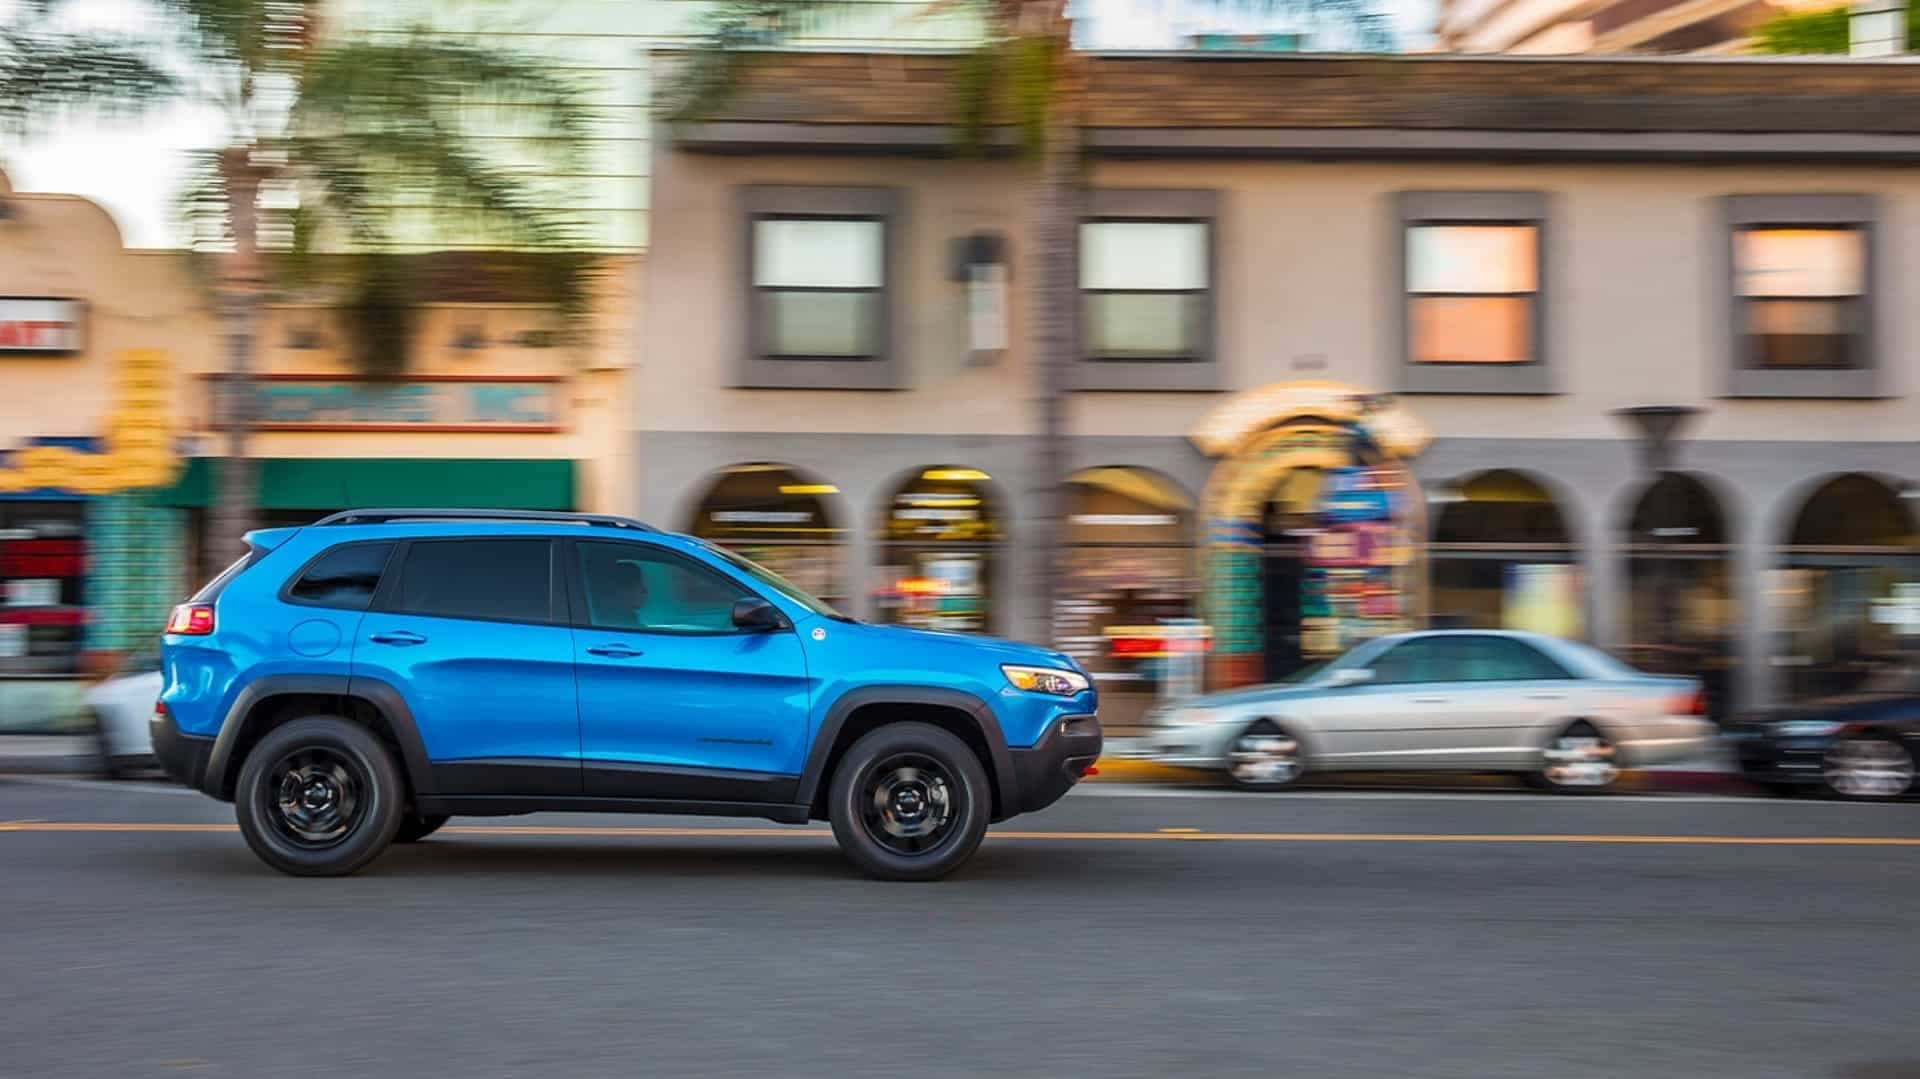 Get to Know the 2020 Jeep Cherokee Near Downey CA